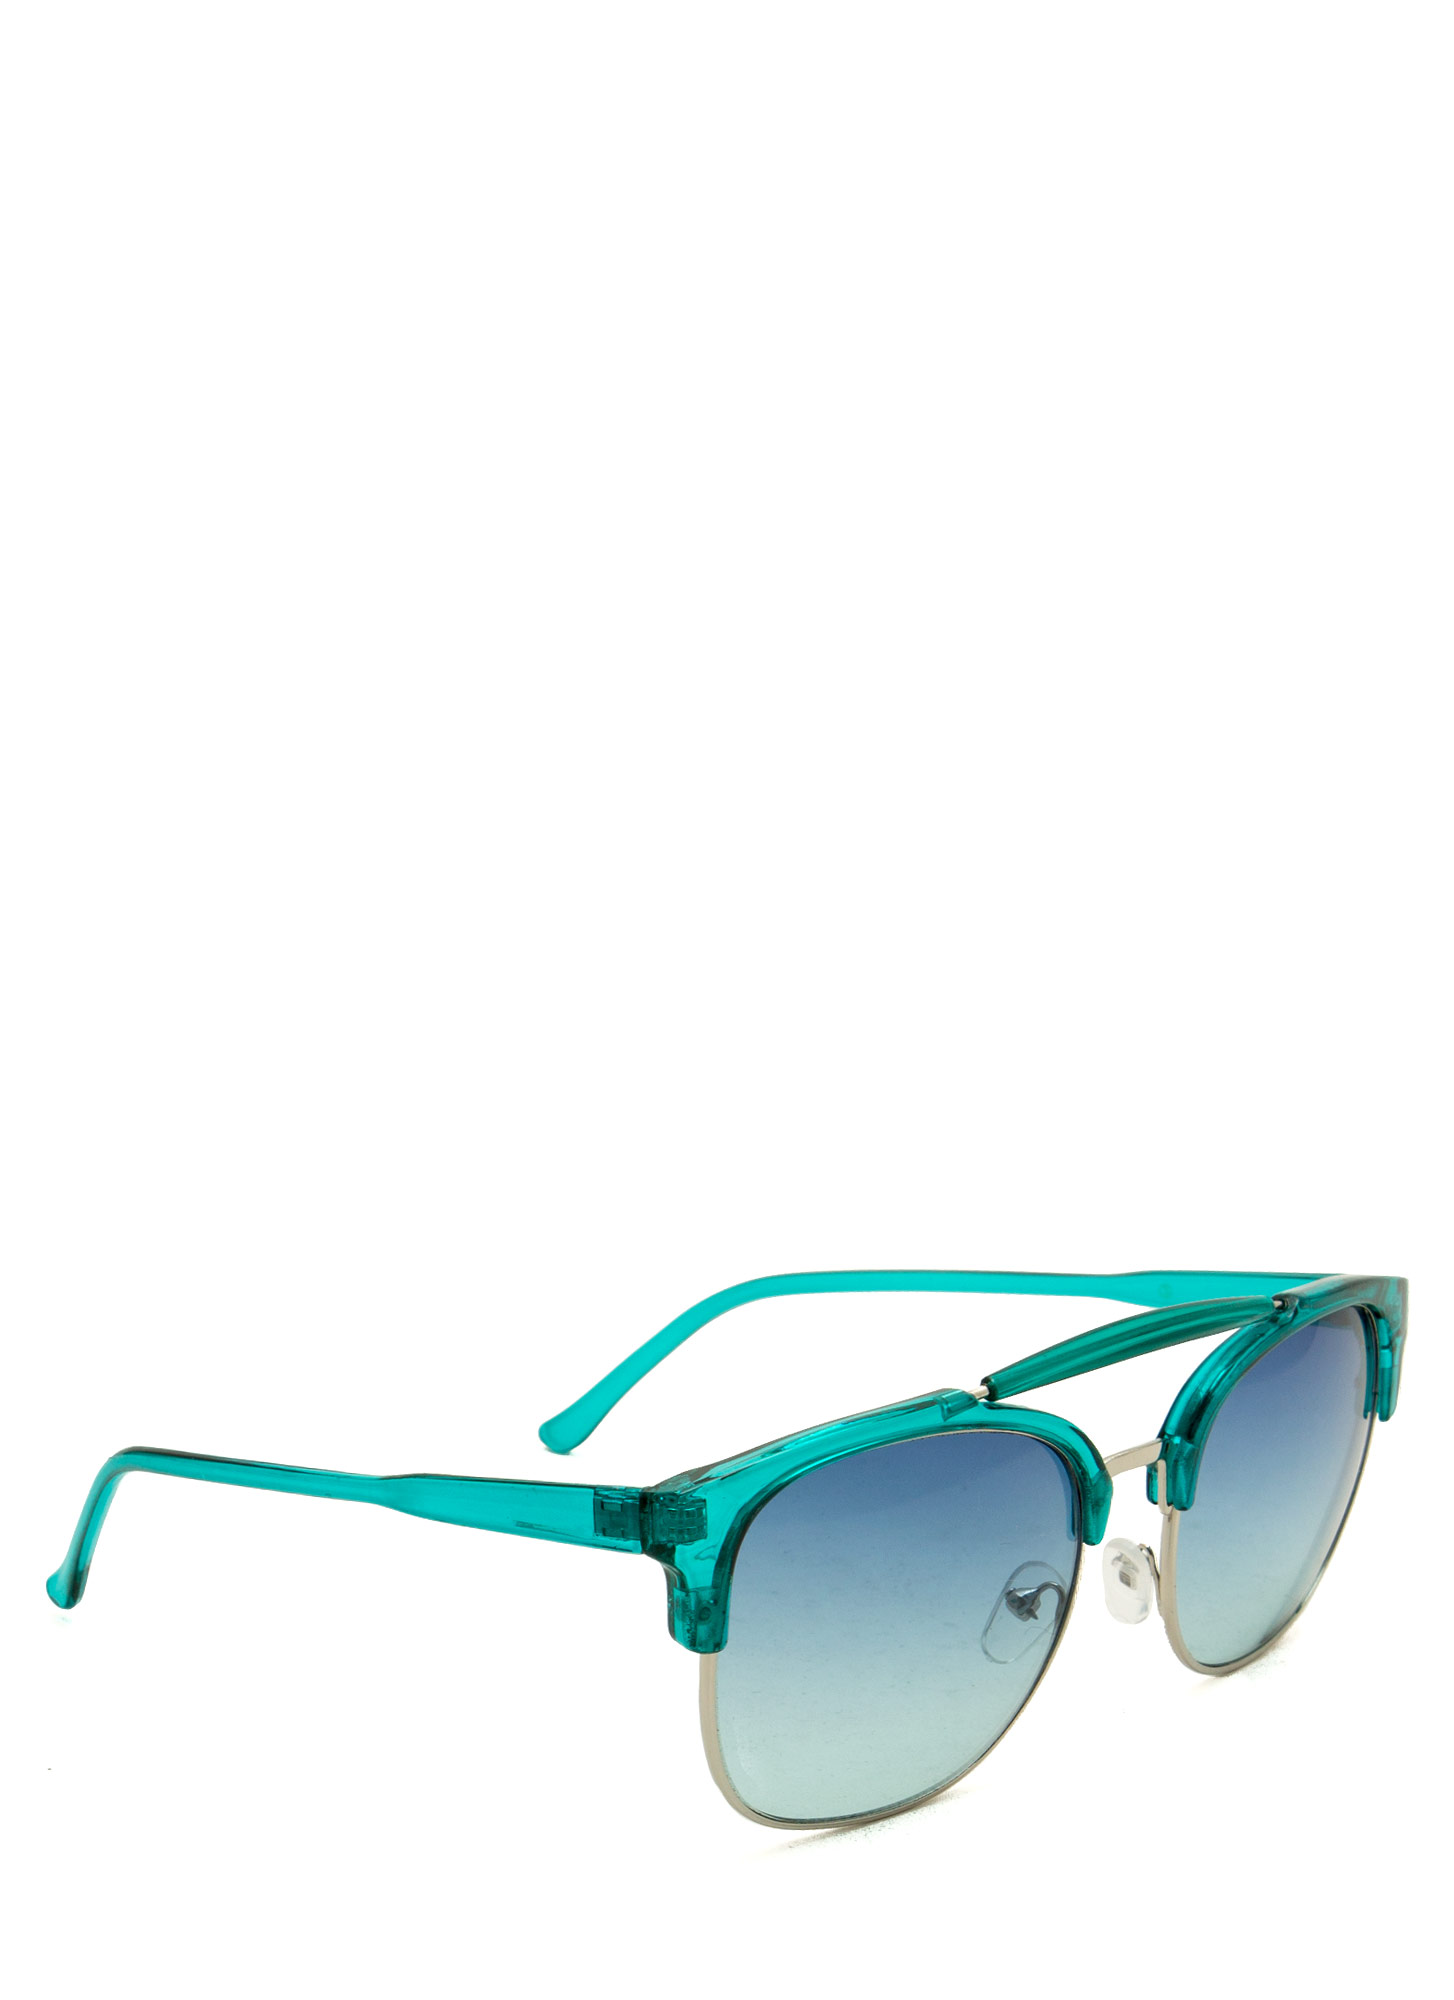 Top Bar Browline Sunglasses TEALSILVER